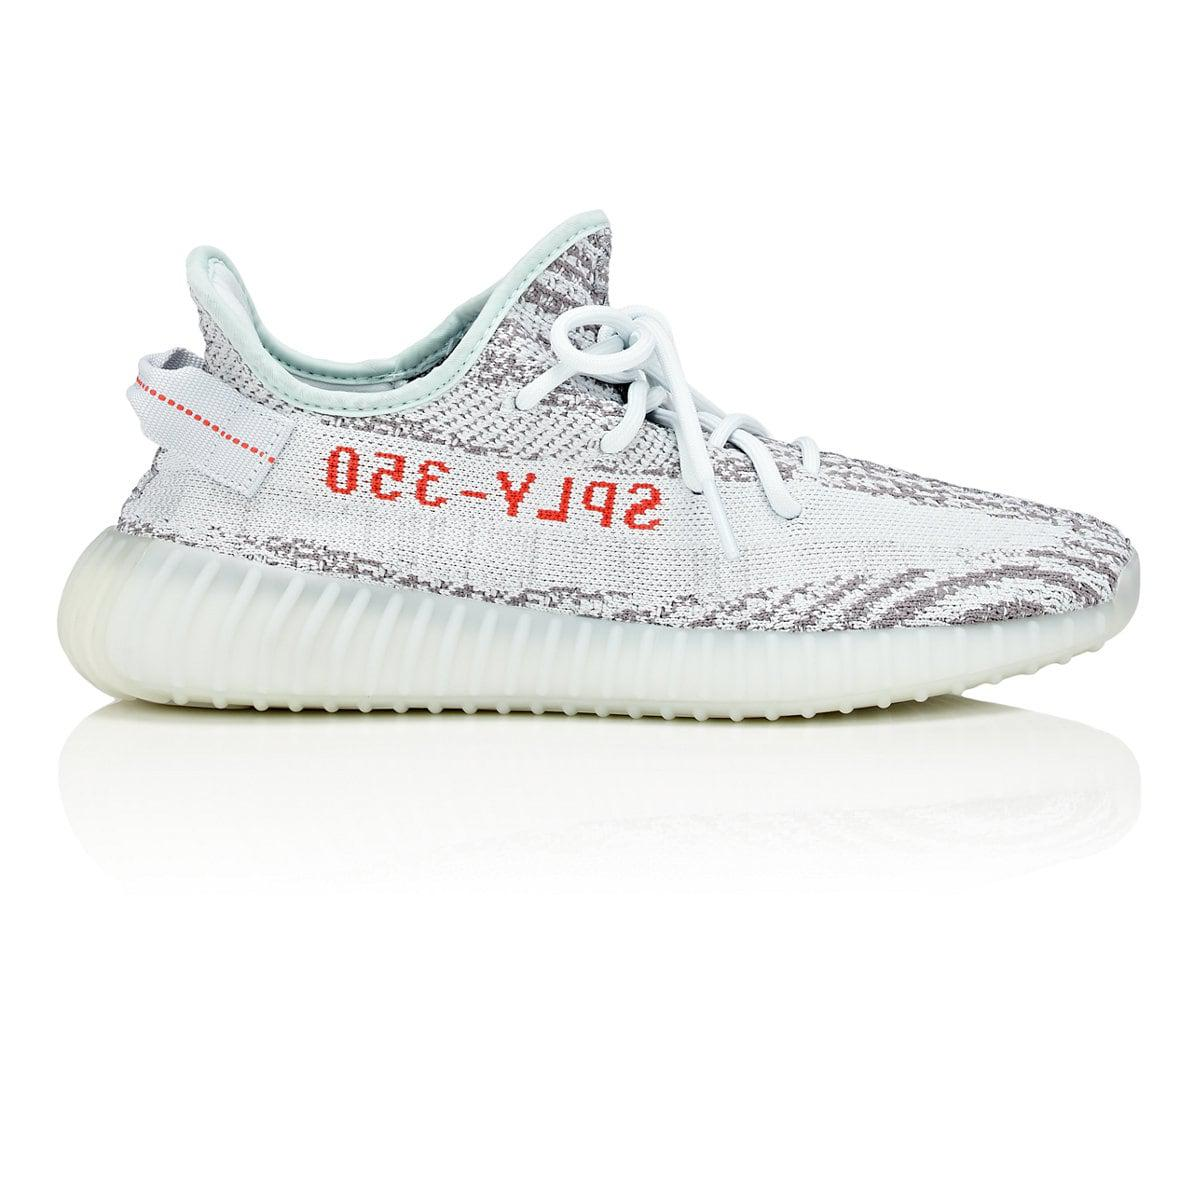 7cfc65db6a1 Lyst - Yeezy Yeezy Boost 350 V2 Sneakers in Gray for Men